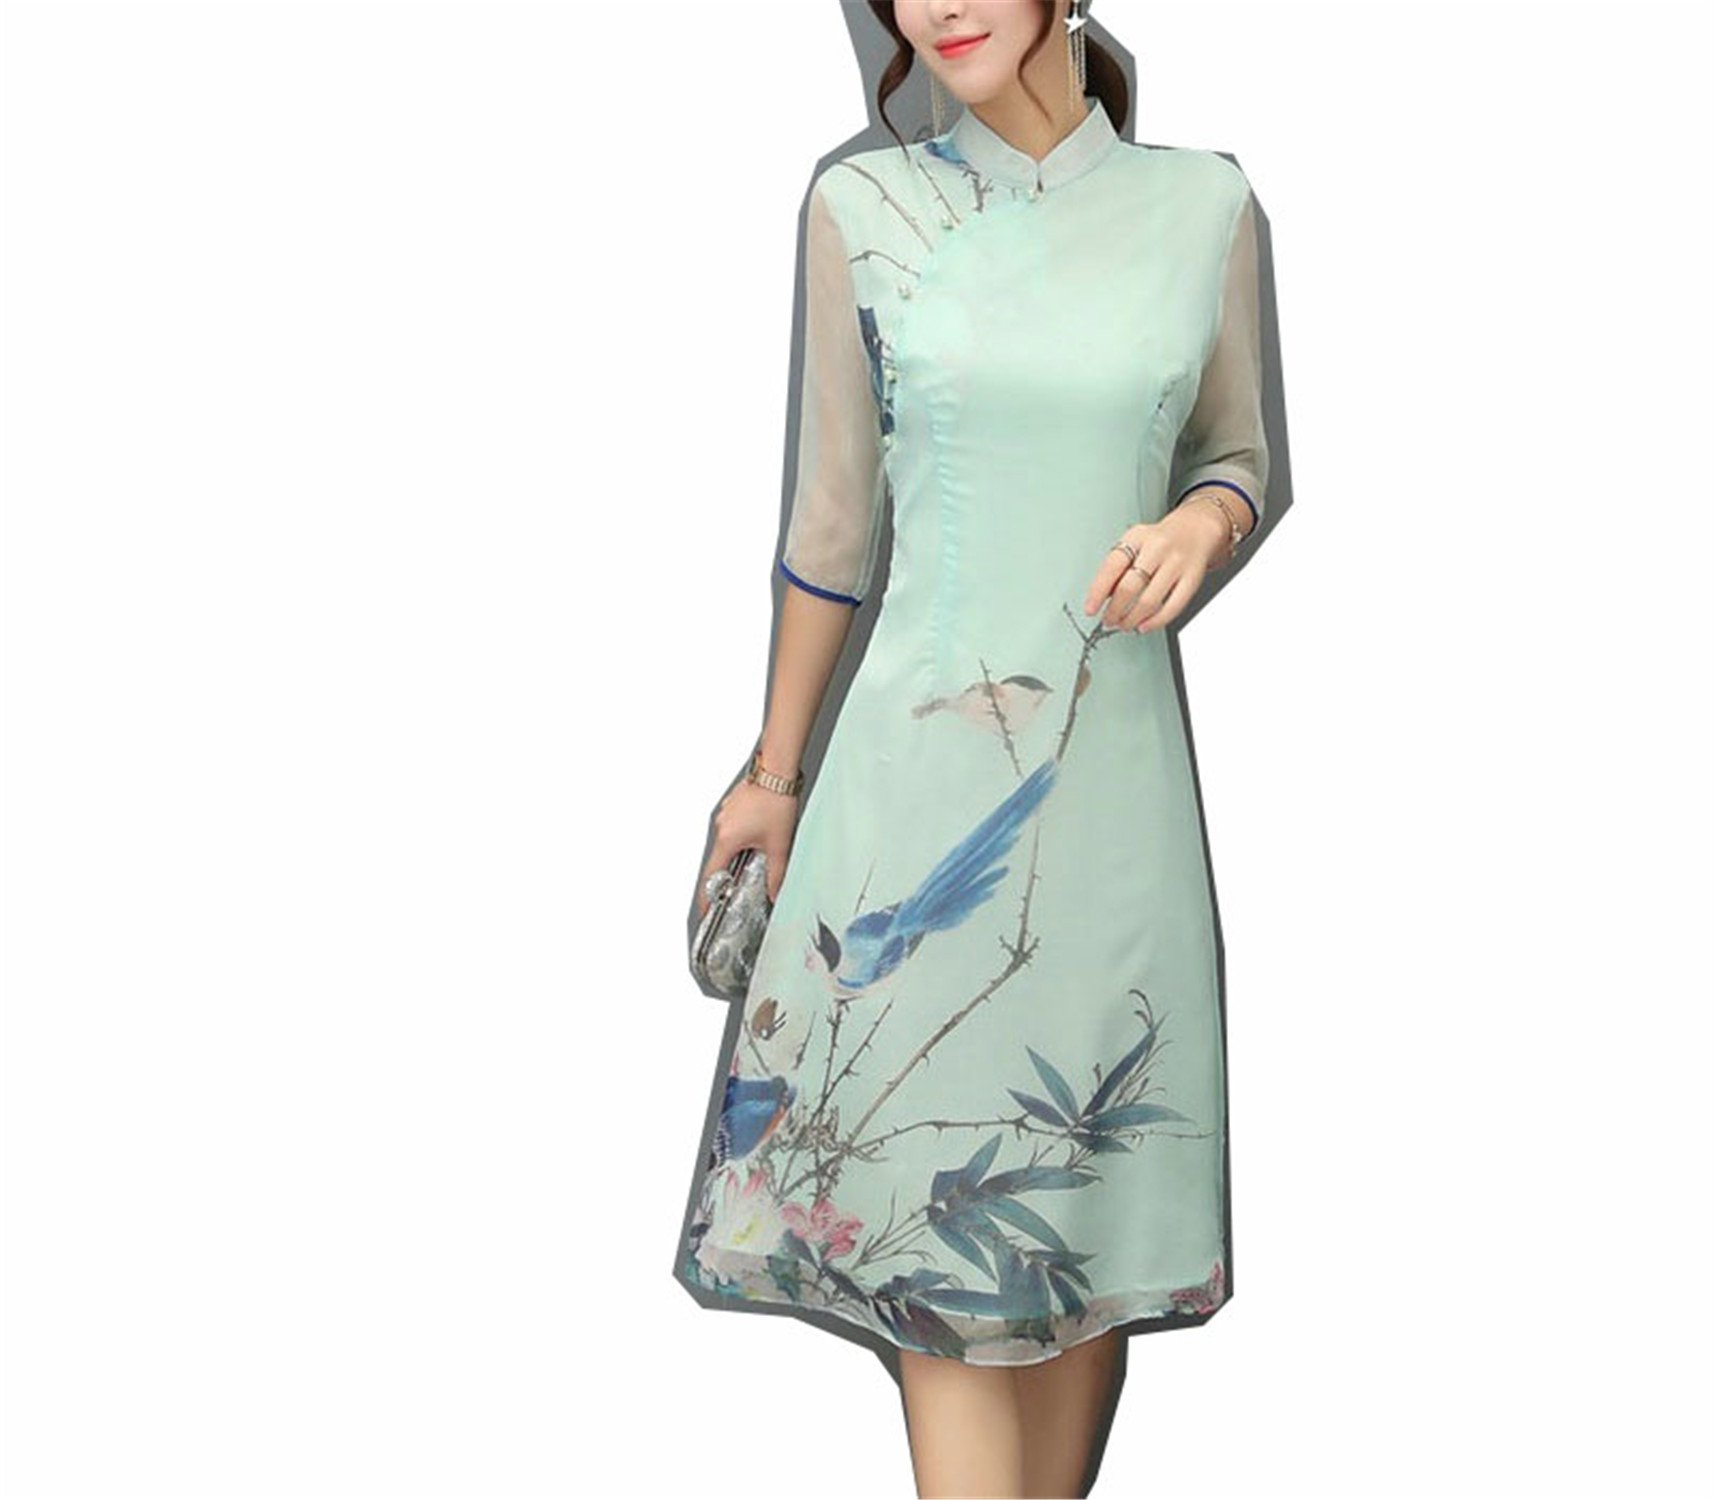 Coac3 Chinese Cheongsam Dresses Elegant Women Modified Modern Qipao Dress Chinese Traditional Dress